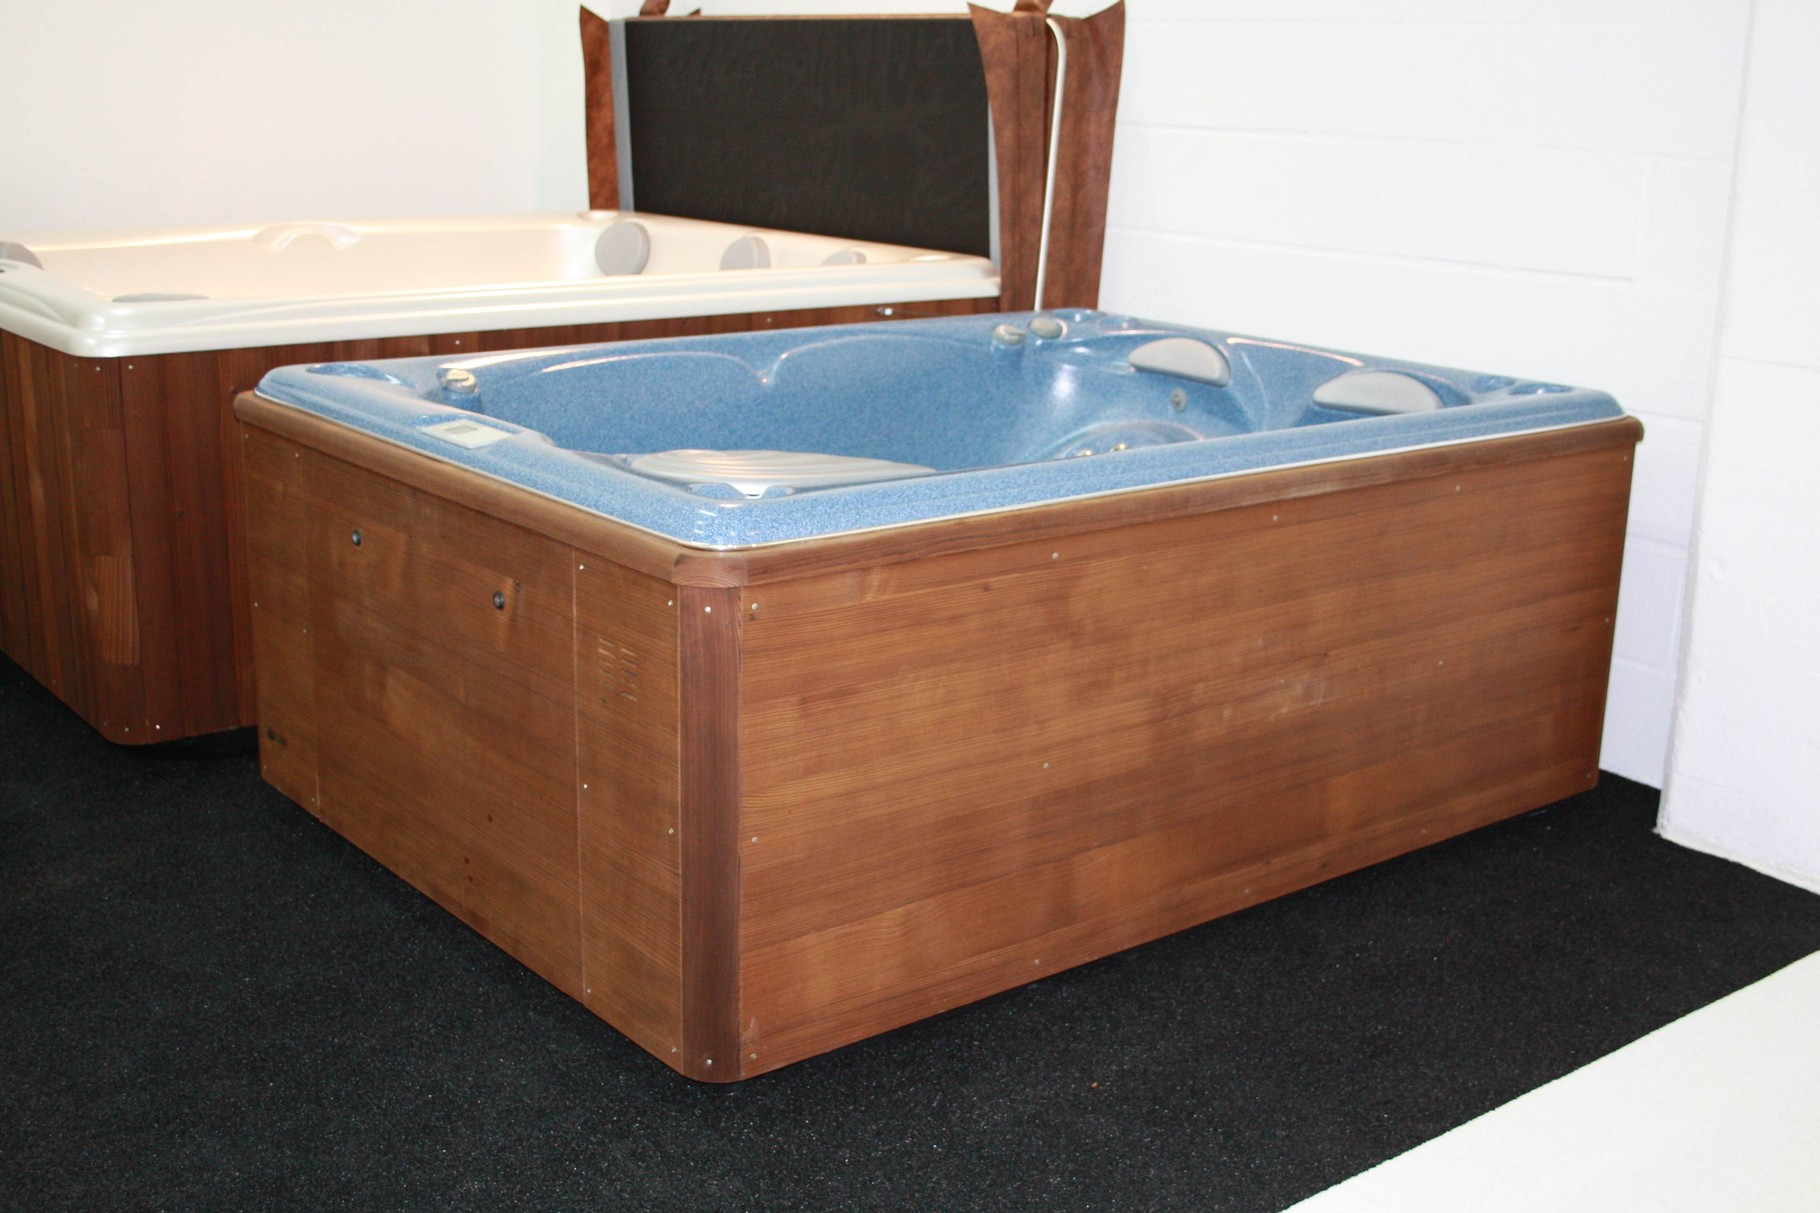 Softub Whirlpool Erfahrungen Softub Whirlpool Gebraucht Good Awesome Outdoor Whirlpool